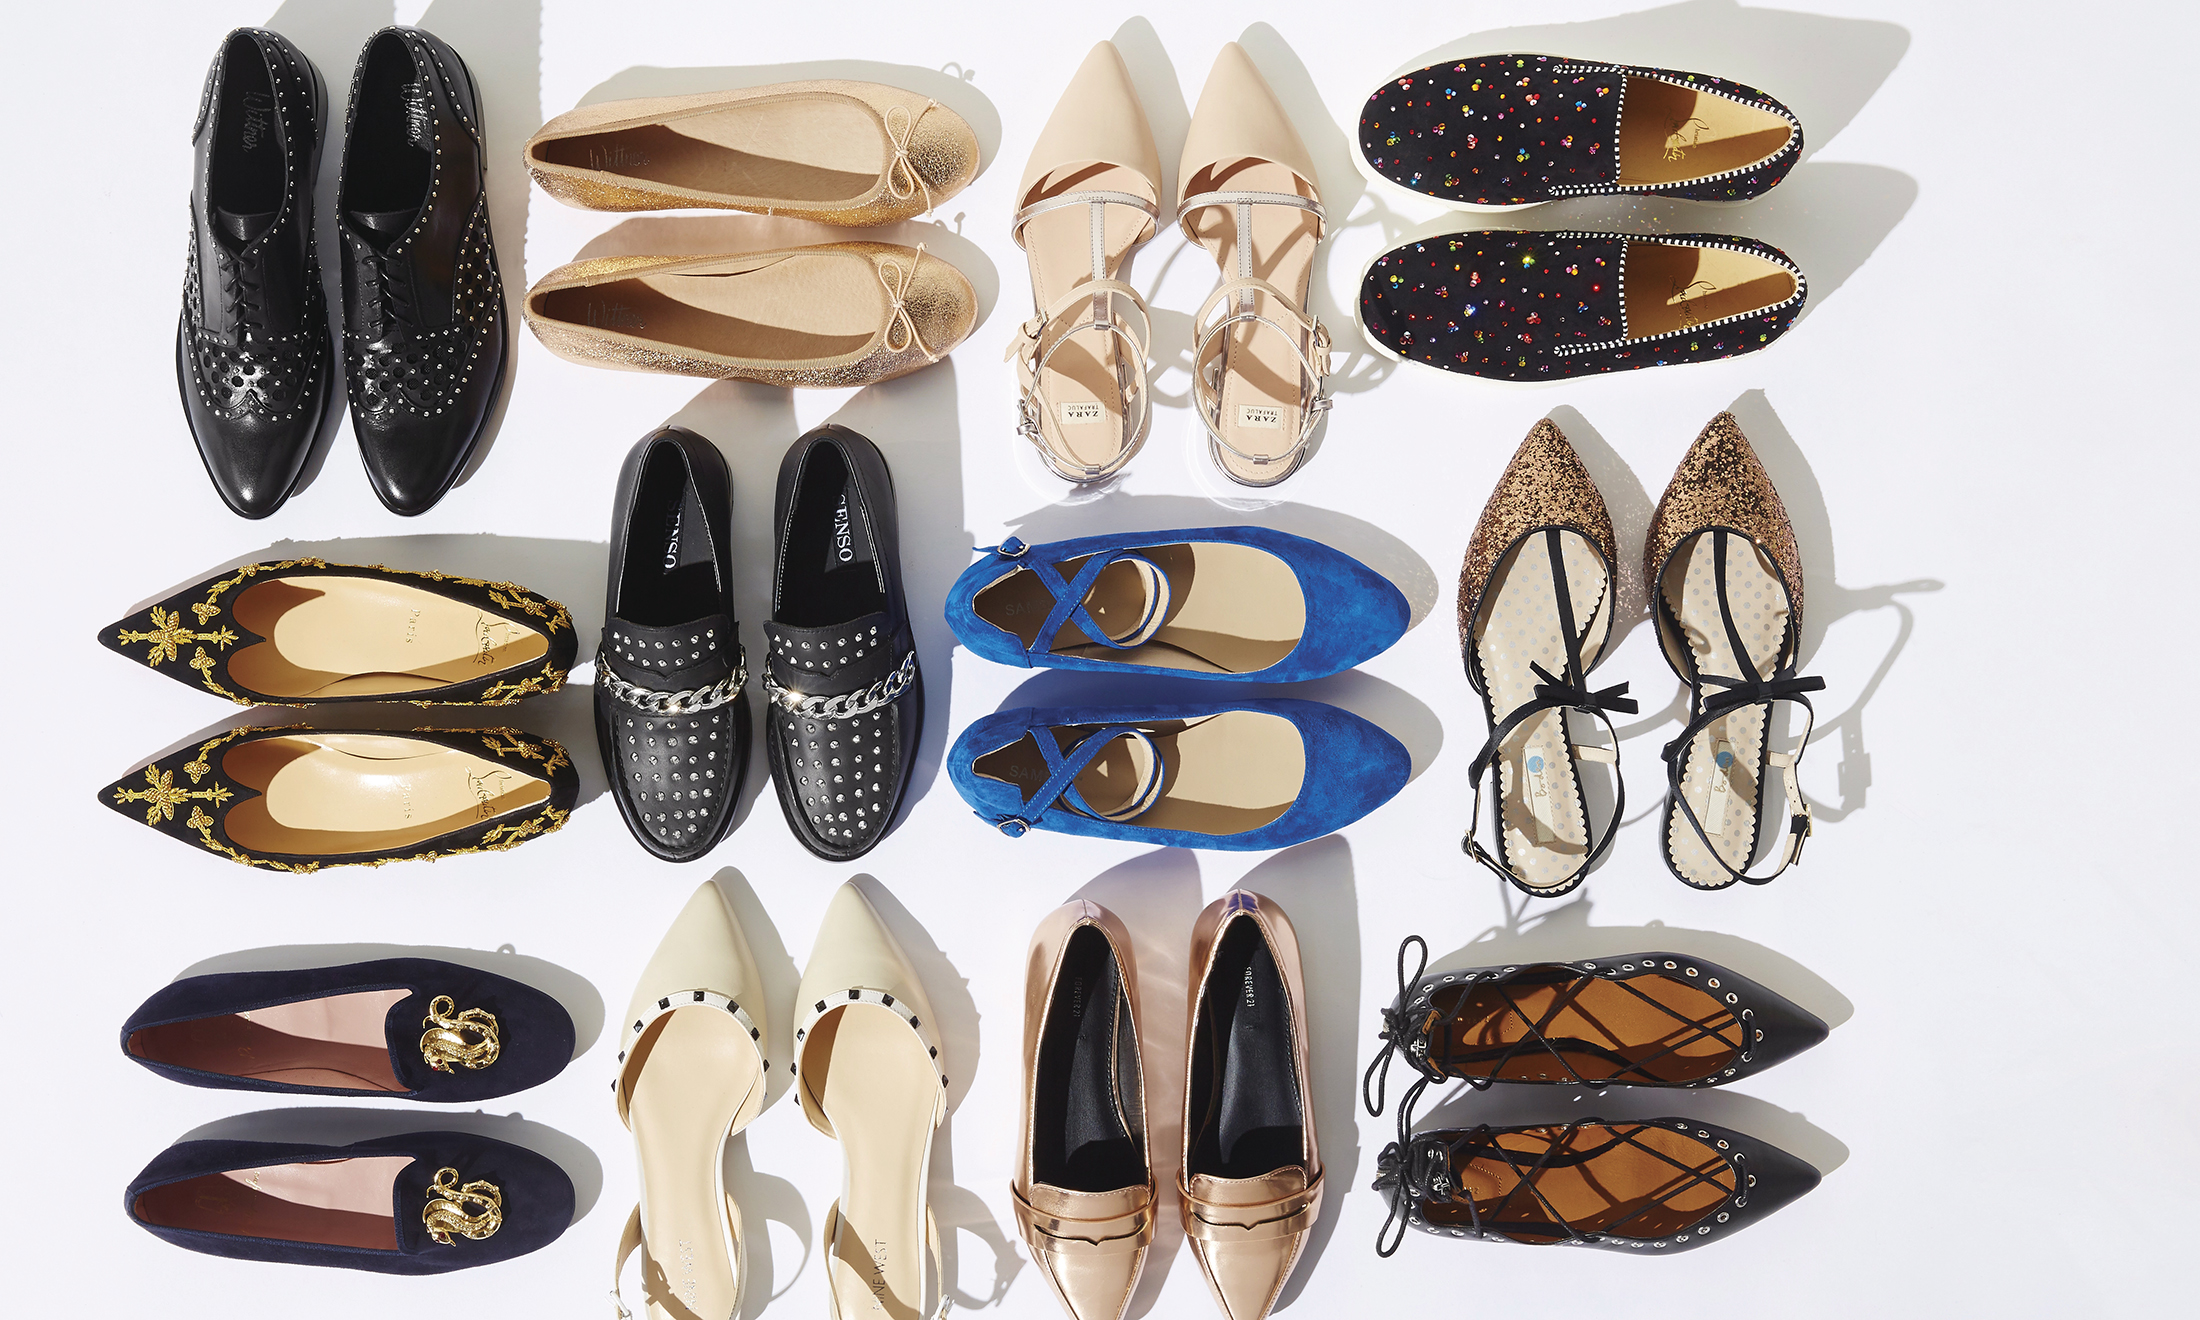 Shoes arranged against a white background.